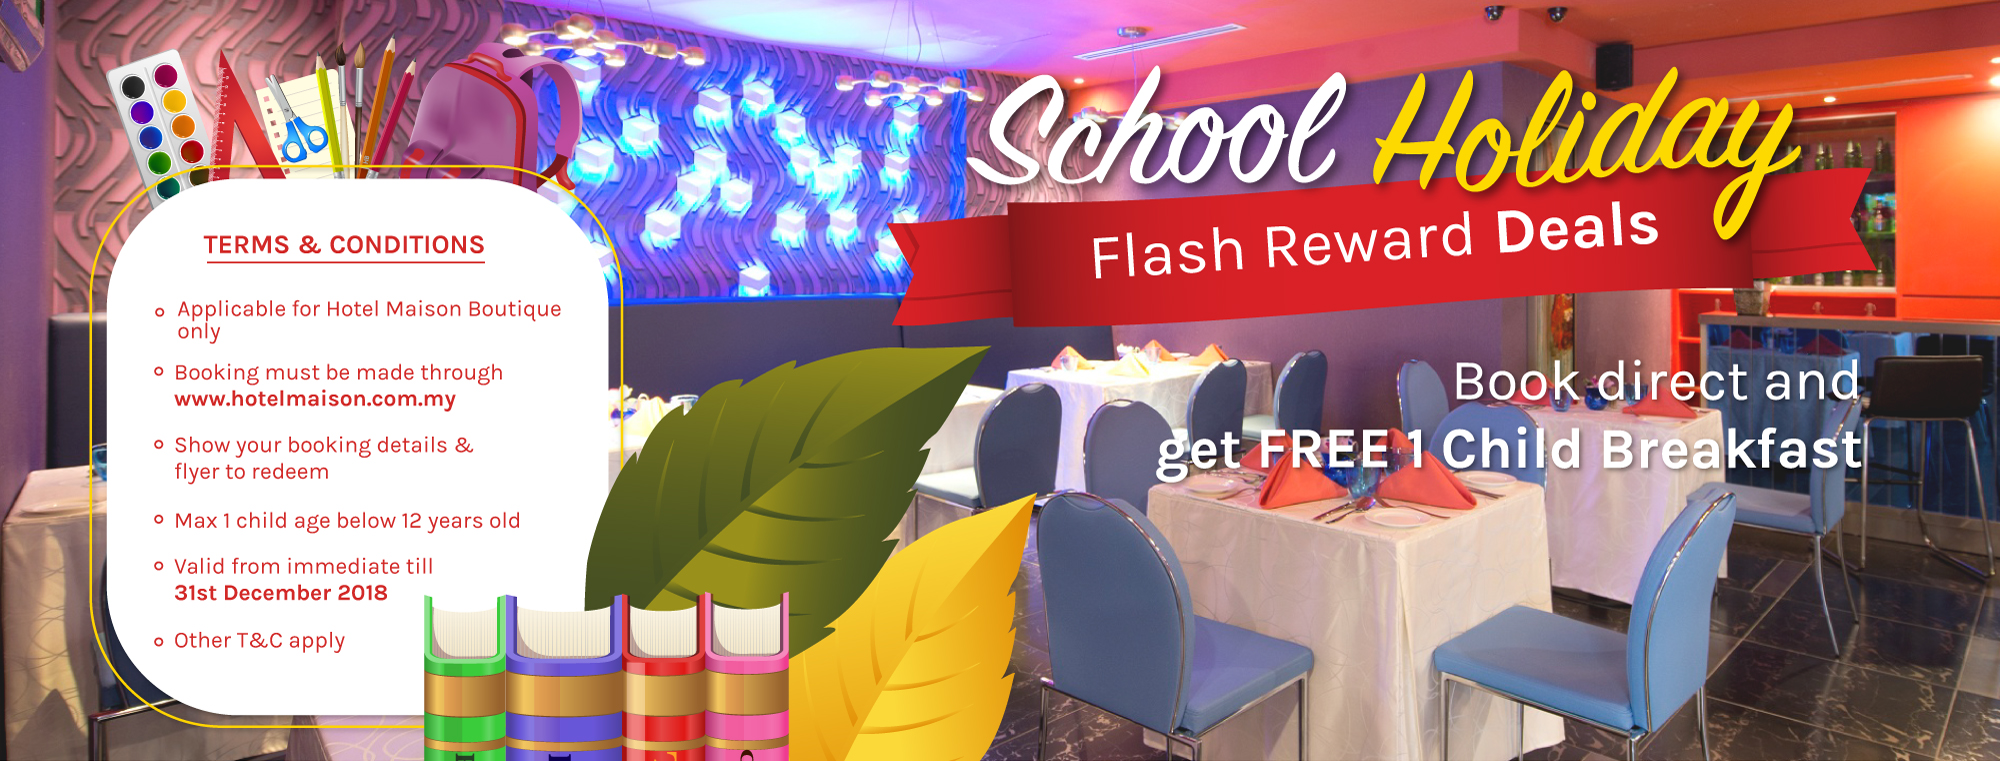 Hotel Maison Boutique School-Holiday Promo Free Child Breakfast